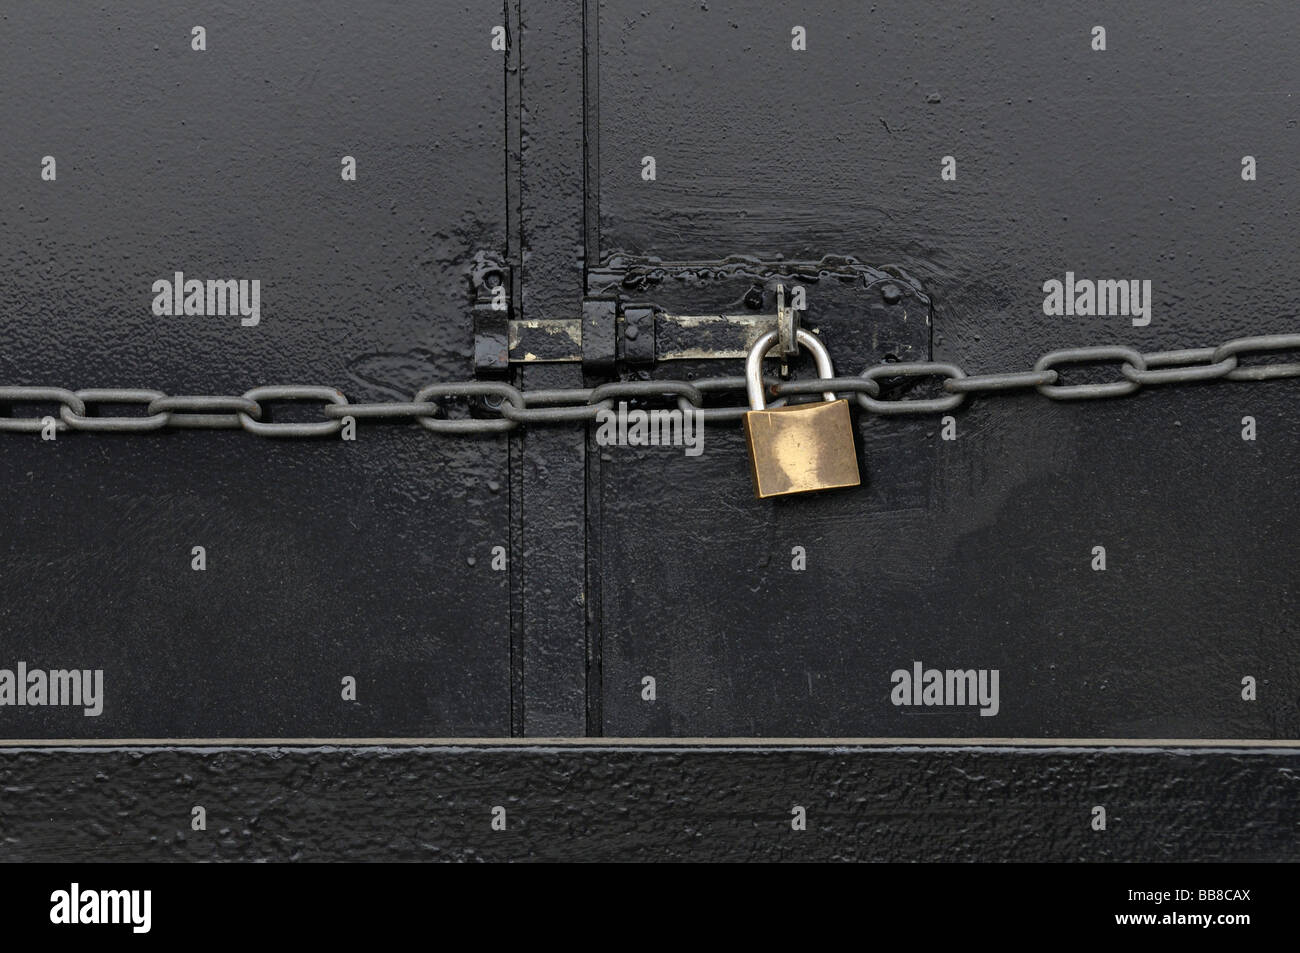 Metal door secured by bar with padlock and chain - Stock Image